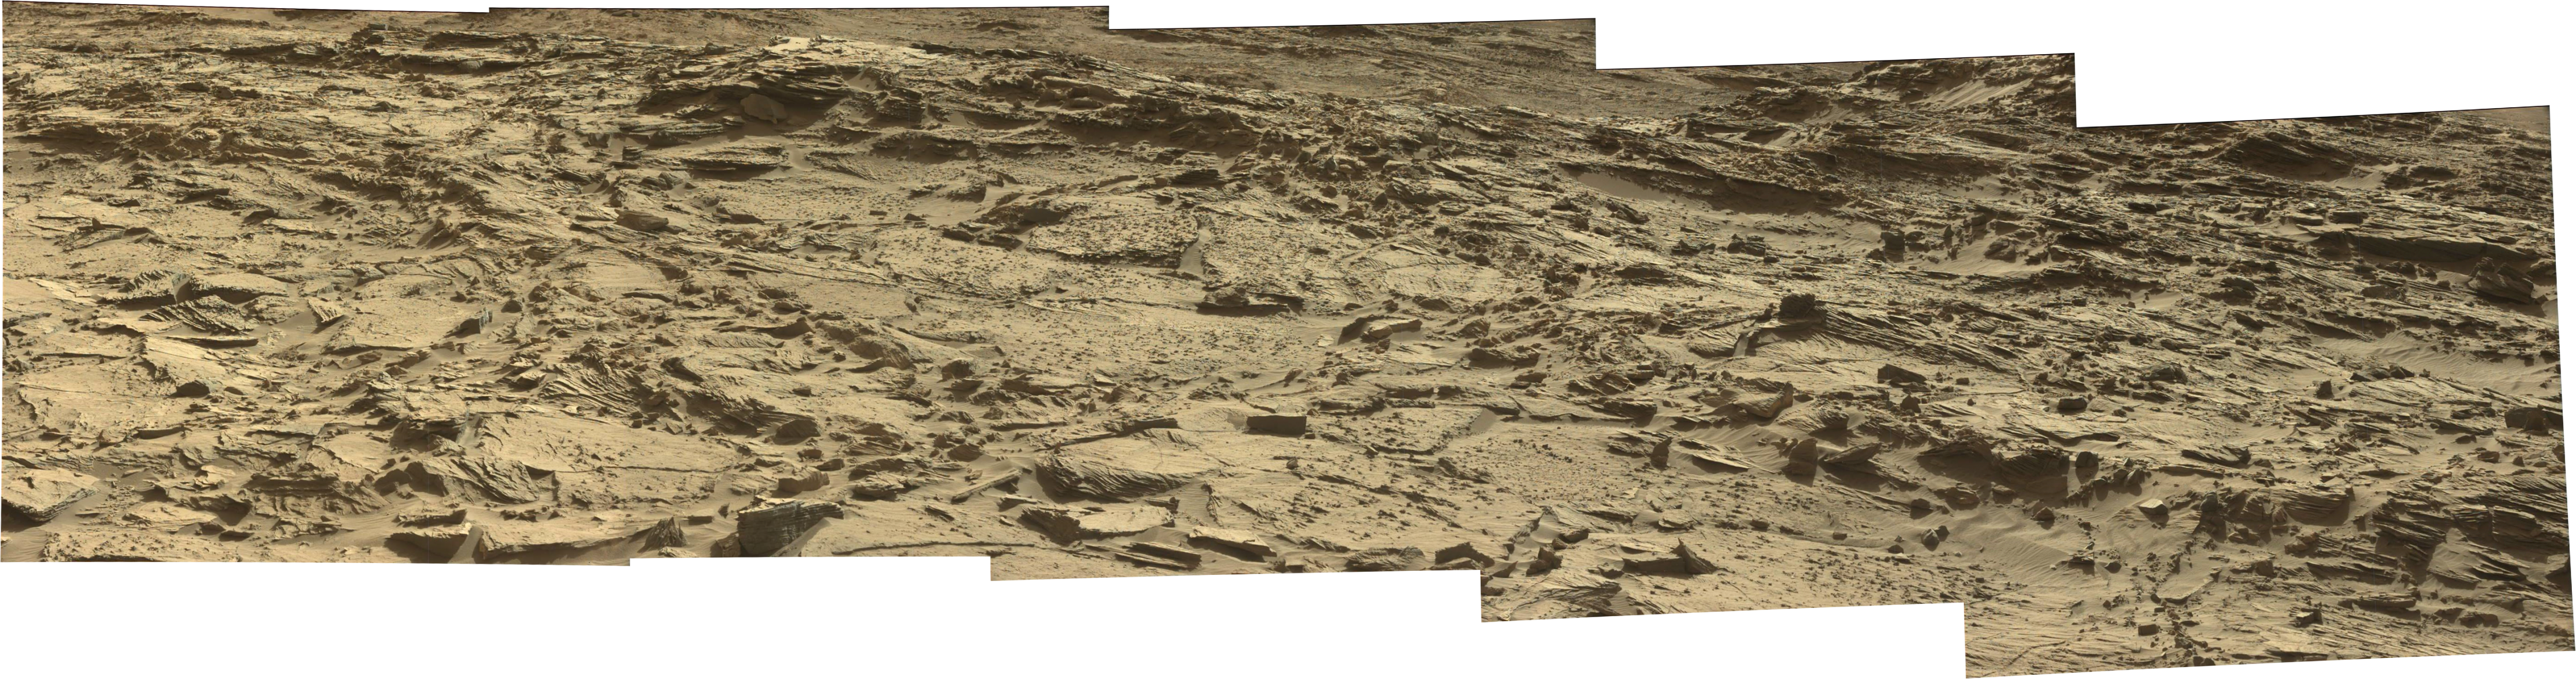 Curiosity Rover Panoramic View 1 of Mars Sol 1296 – Click to enlarge